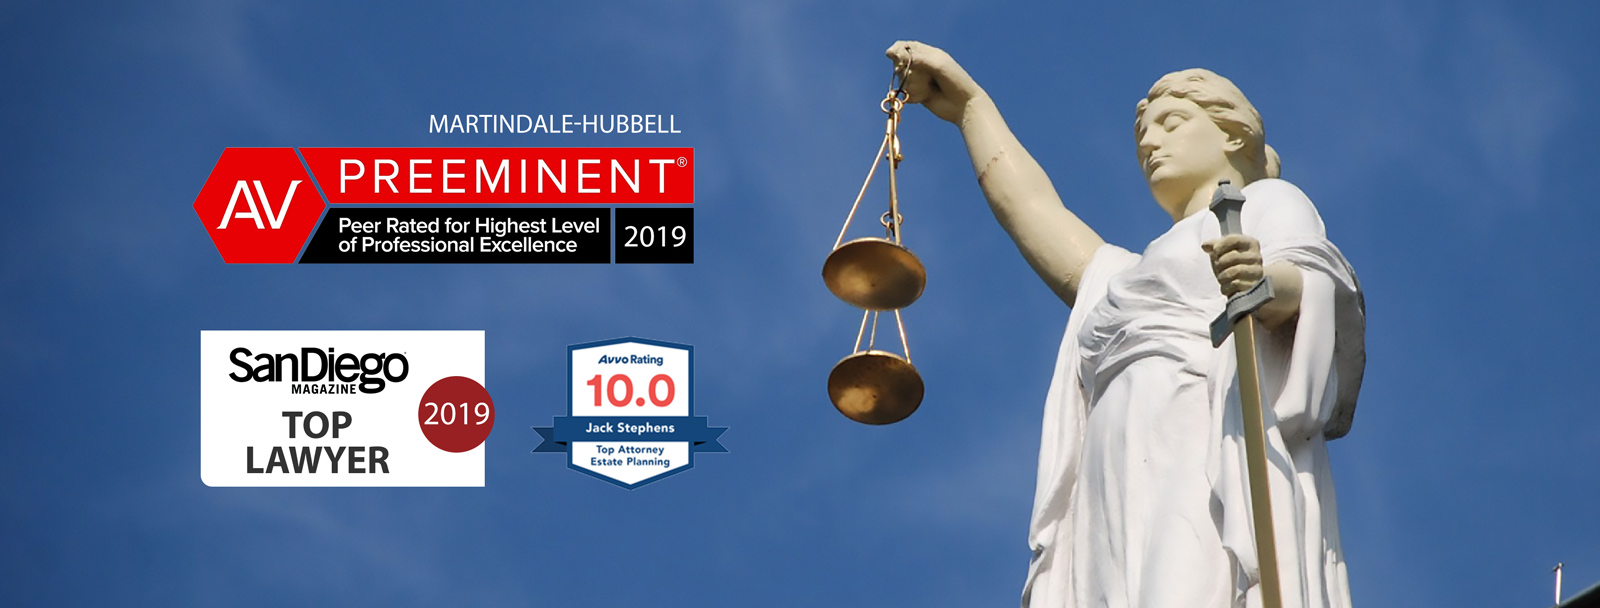 Preeminent Rating by Martindale-Hubbell 2019